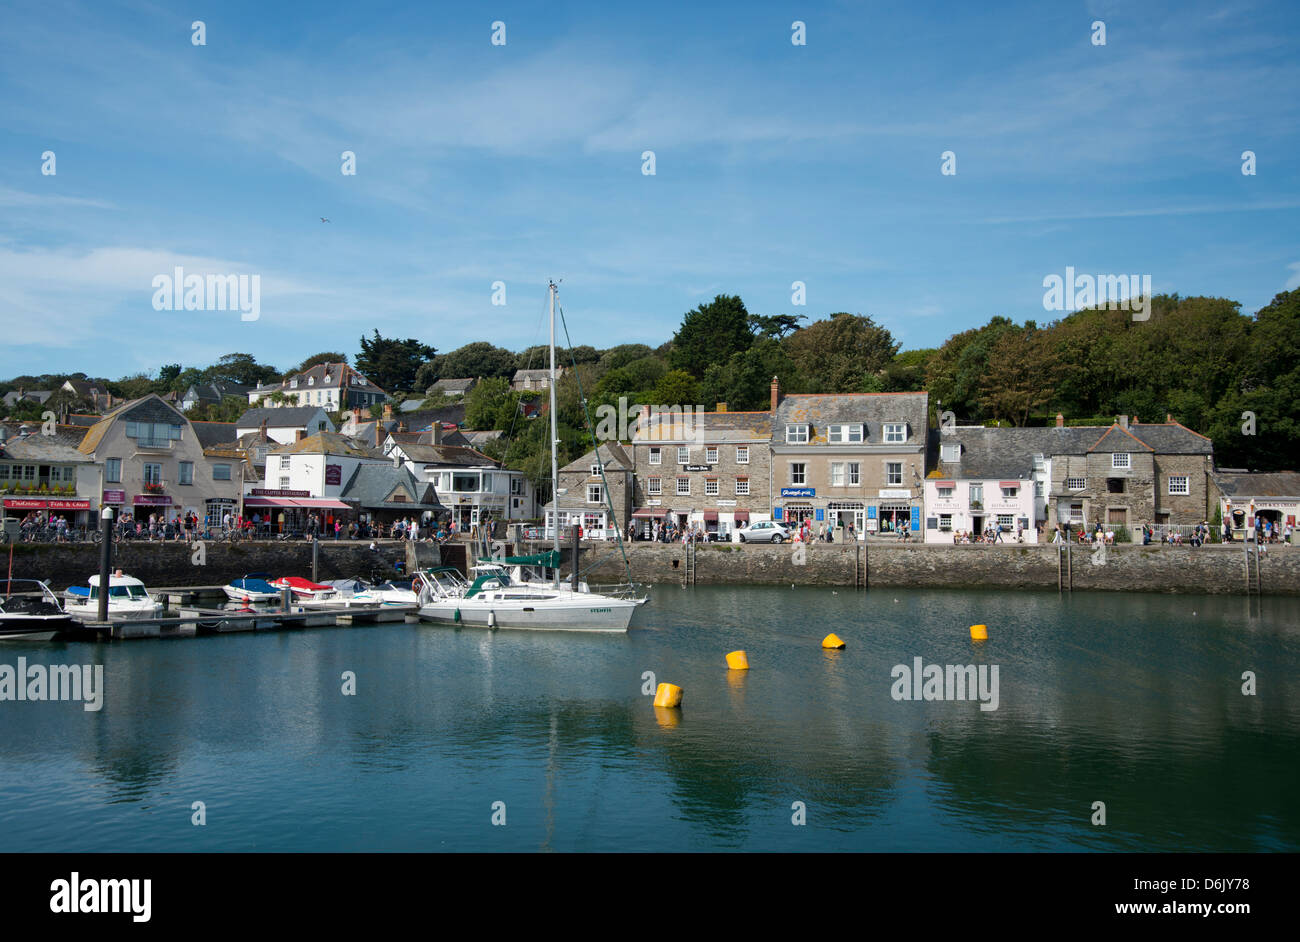 A view of the quaint stone buildings around the harbour in Padstow, Cornwall, England, United Kingdom, Europe - Stock Image